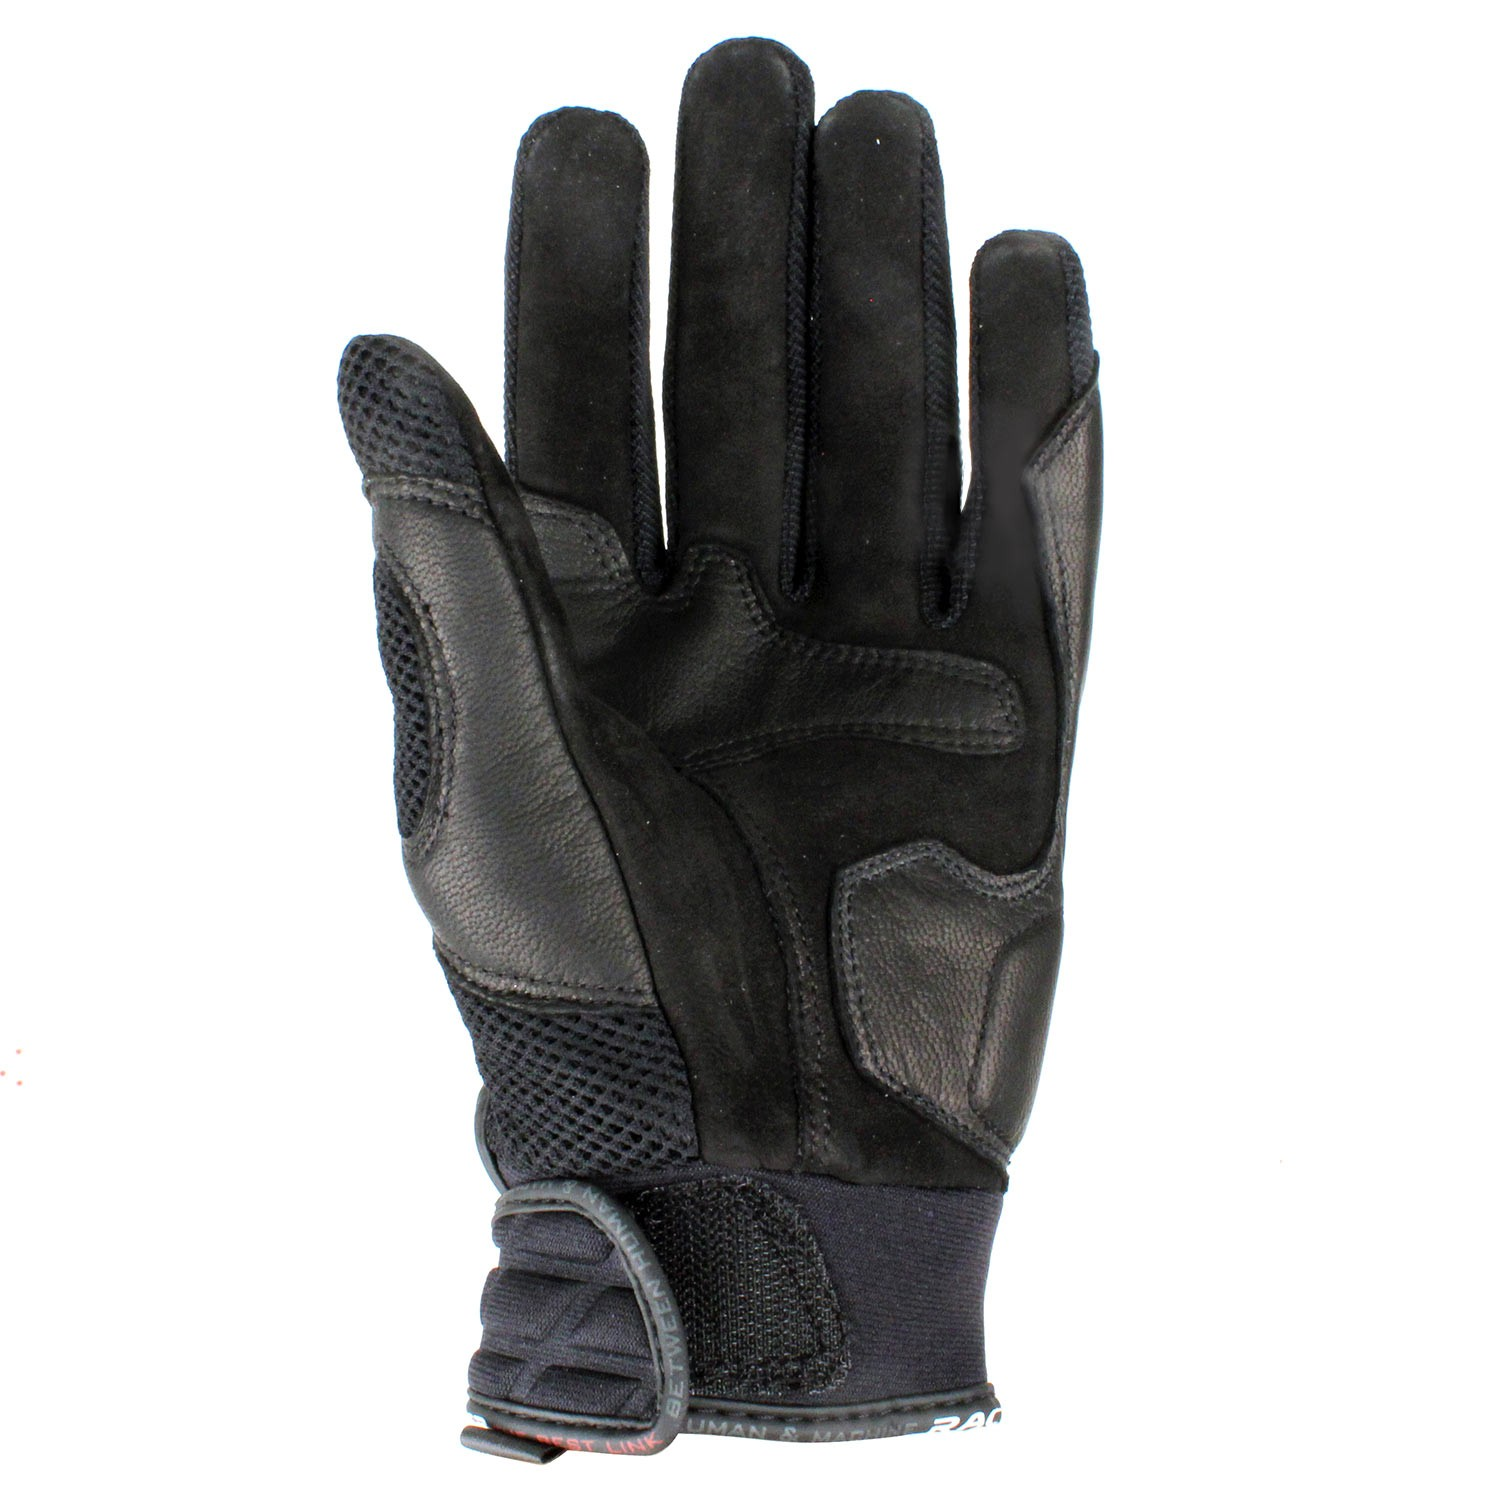 gants cuir racer lighter noir japauto accessoires equipement pilote pour moto et scooter. Black Bedroom Furniture Sets. Home Design Ideas